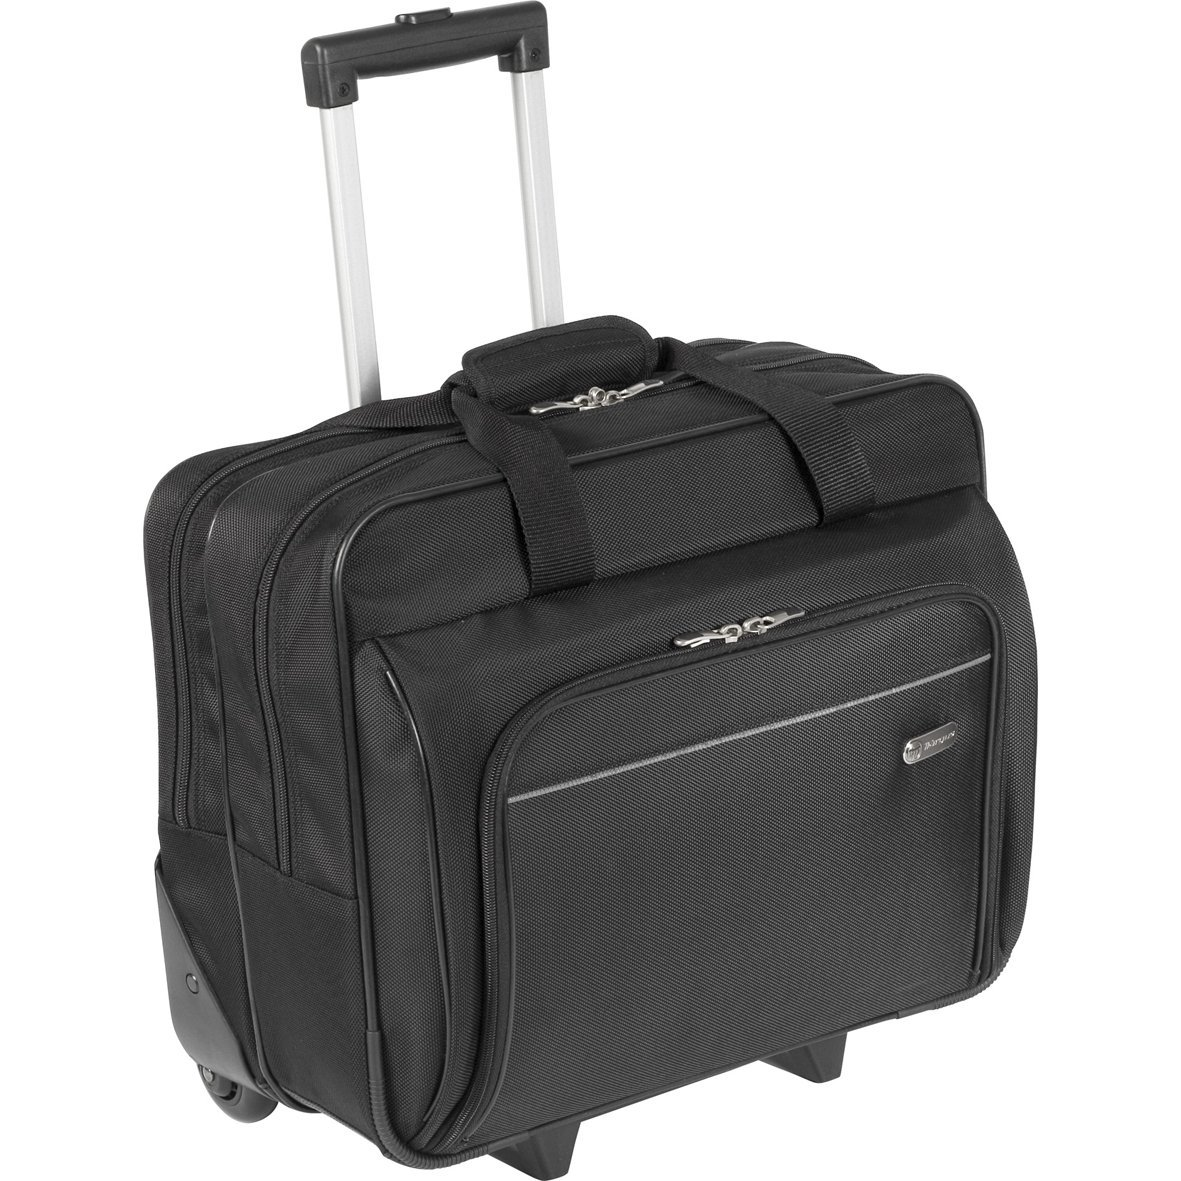 Targus TBR003EU Executive Laptop Roller Bag